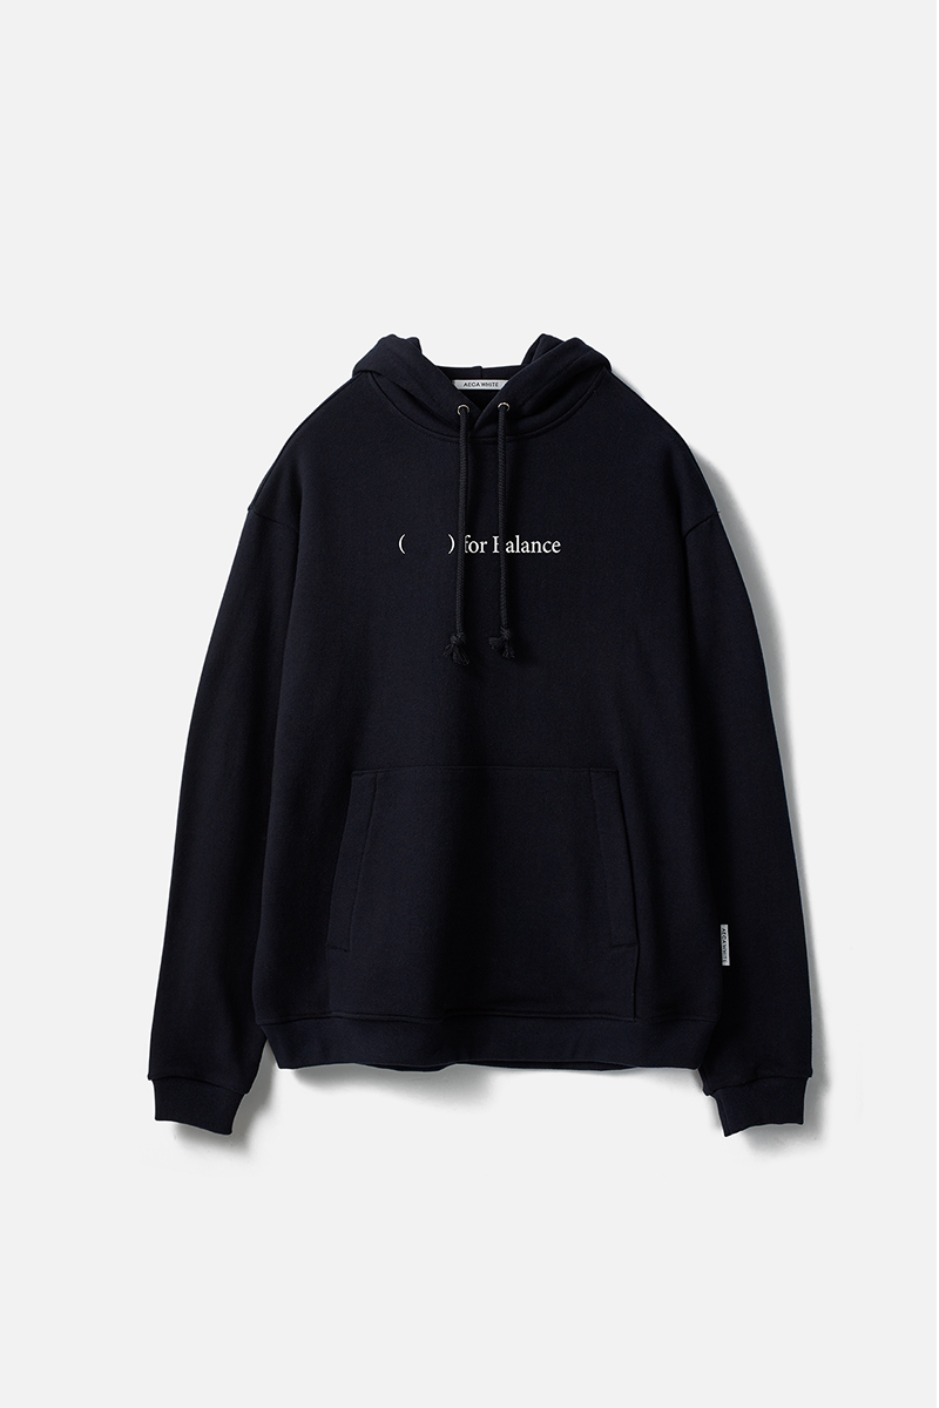 FOR BALANCE PULLOVER HOODIE-NAVY